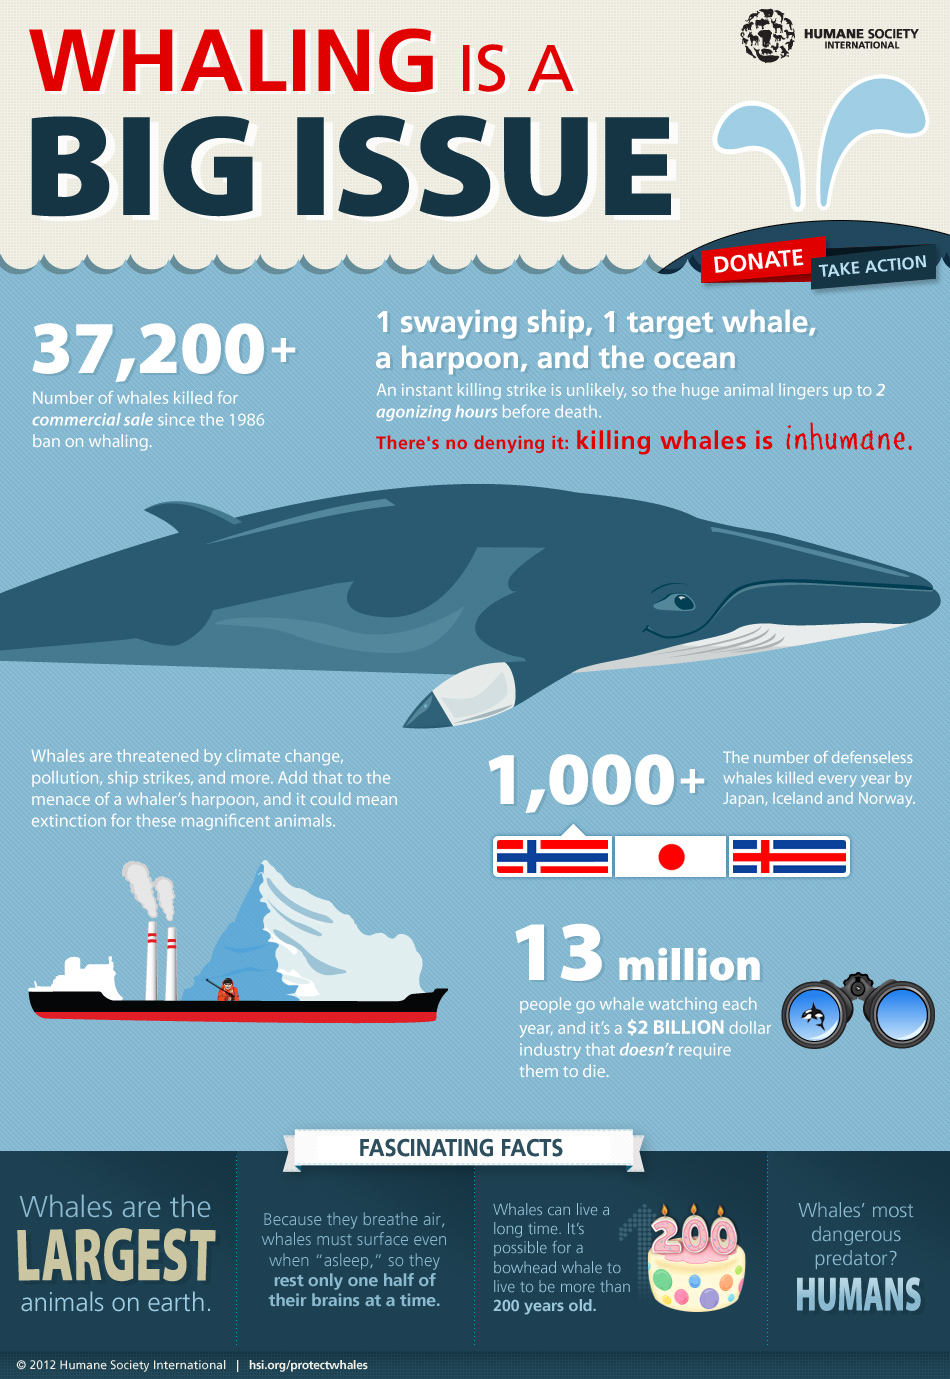 the whaling and whale watching industry tourism essay The importance of whale-watching to the tourism economy has been recog- nised by iceland's leading tourism body, the icelandic tourism industry associ- ation, which has stated: 'whale-watching has become one of the most popular.